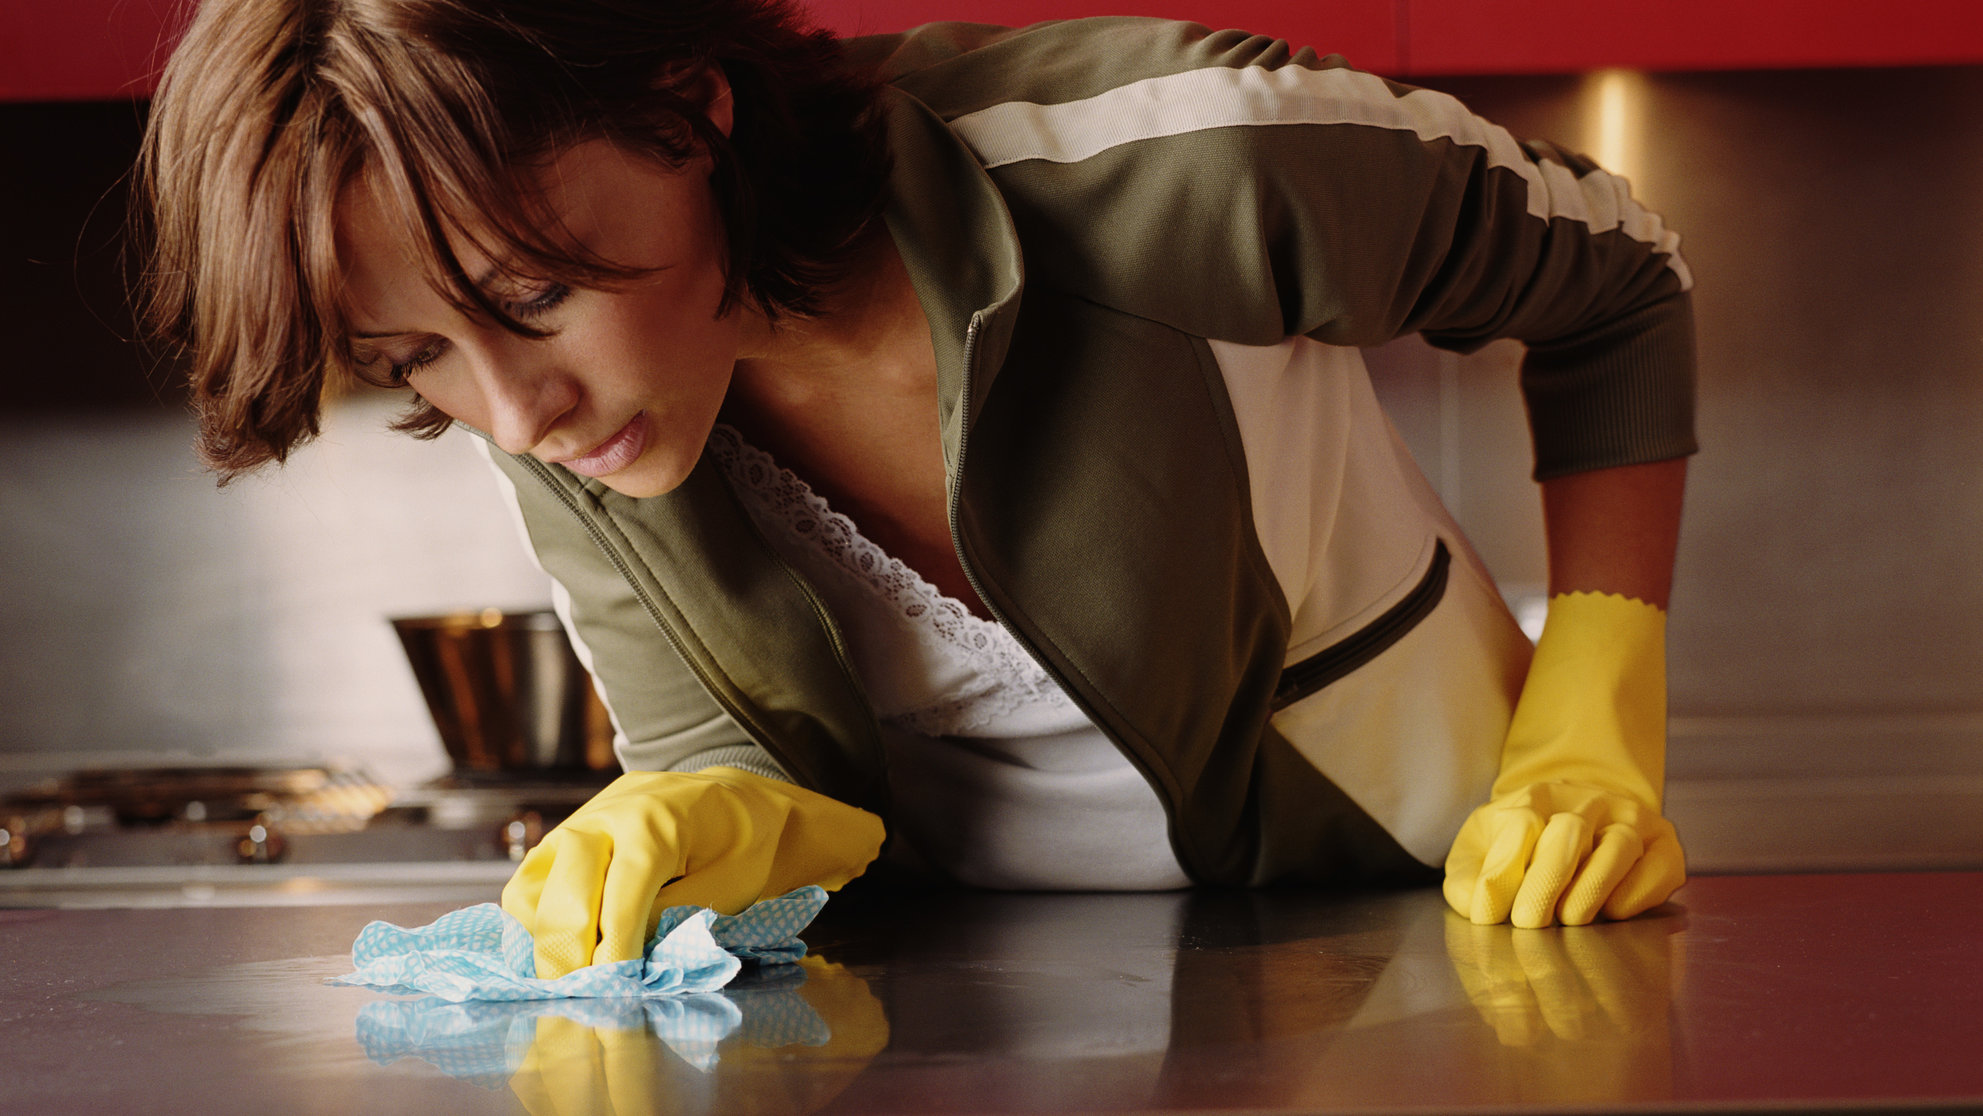 Antibacterial Chemicals Common in Indoor Dust Are Linked to Antibiotic Resistance